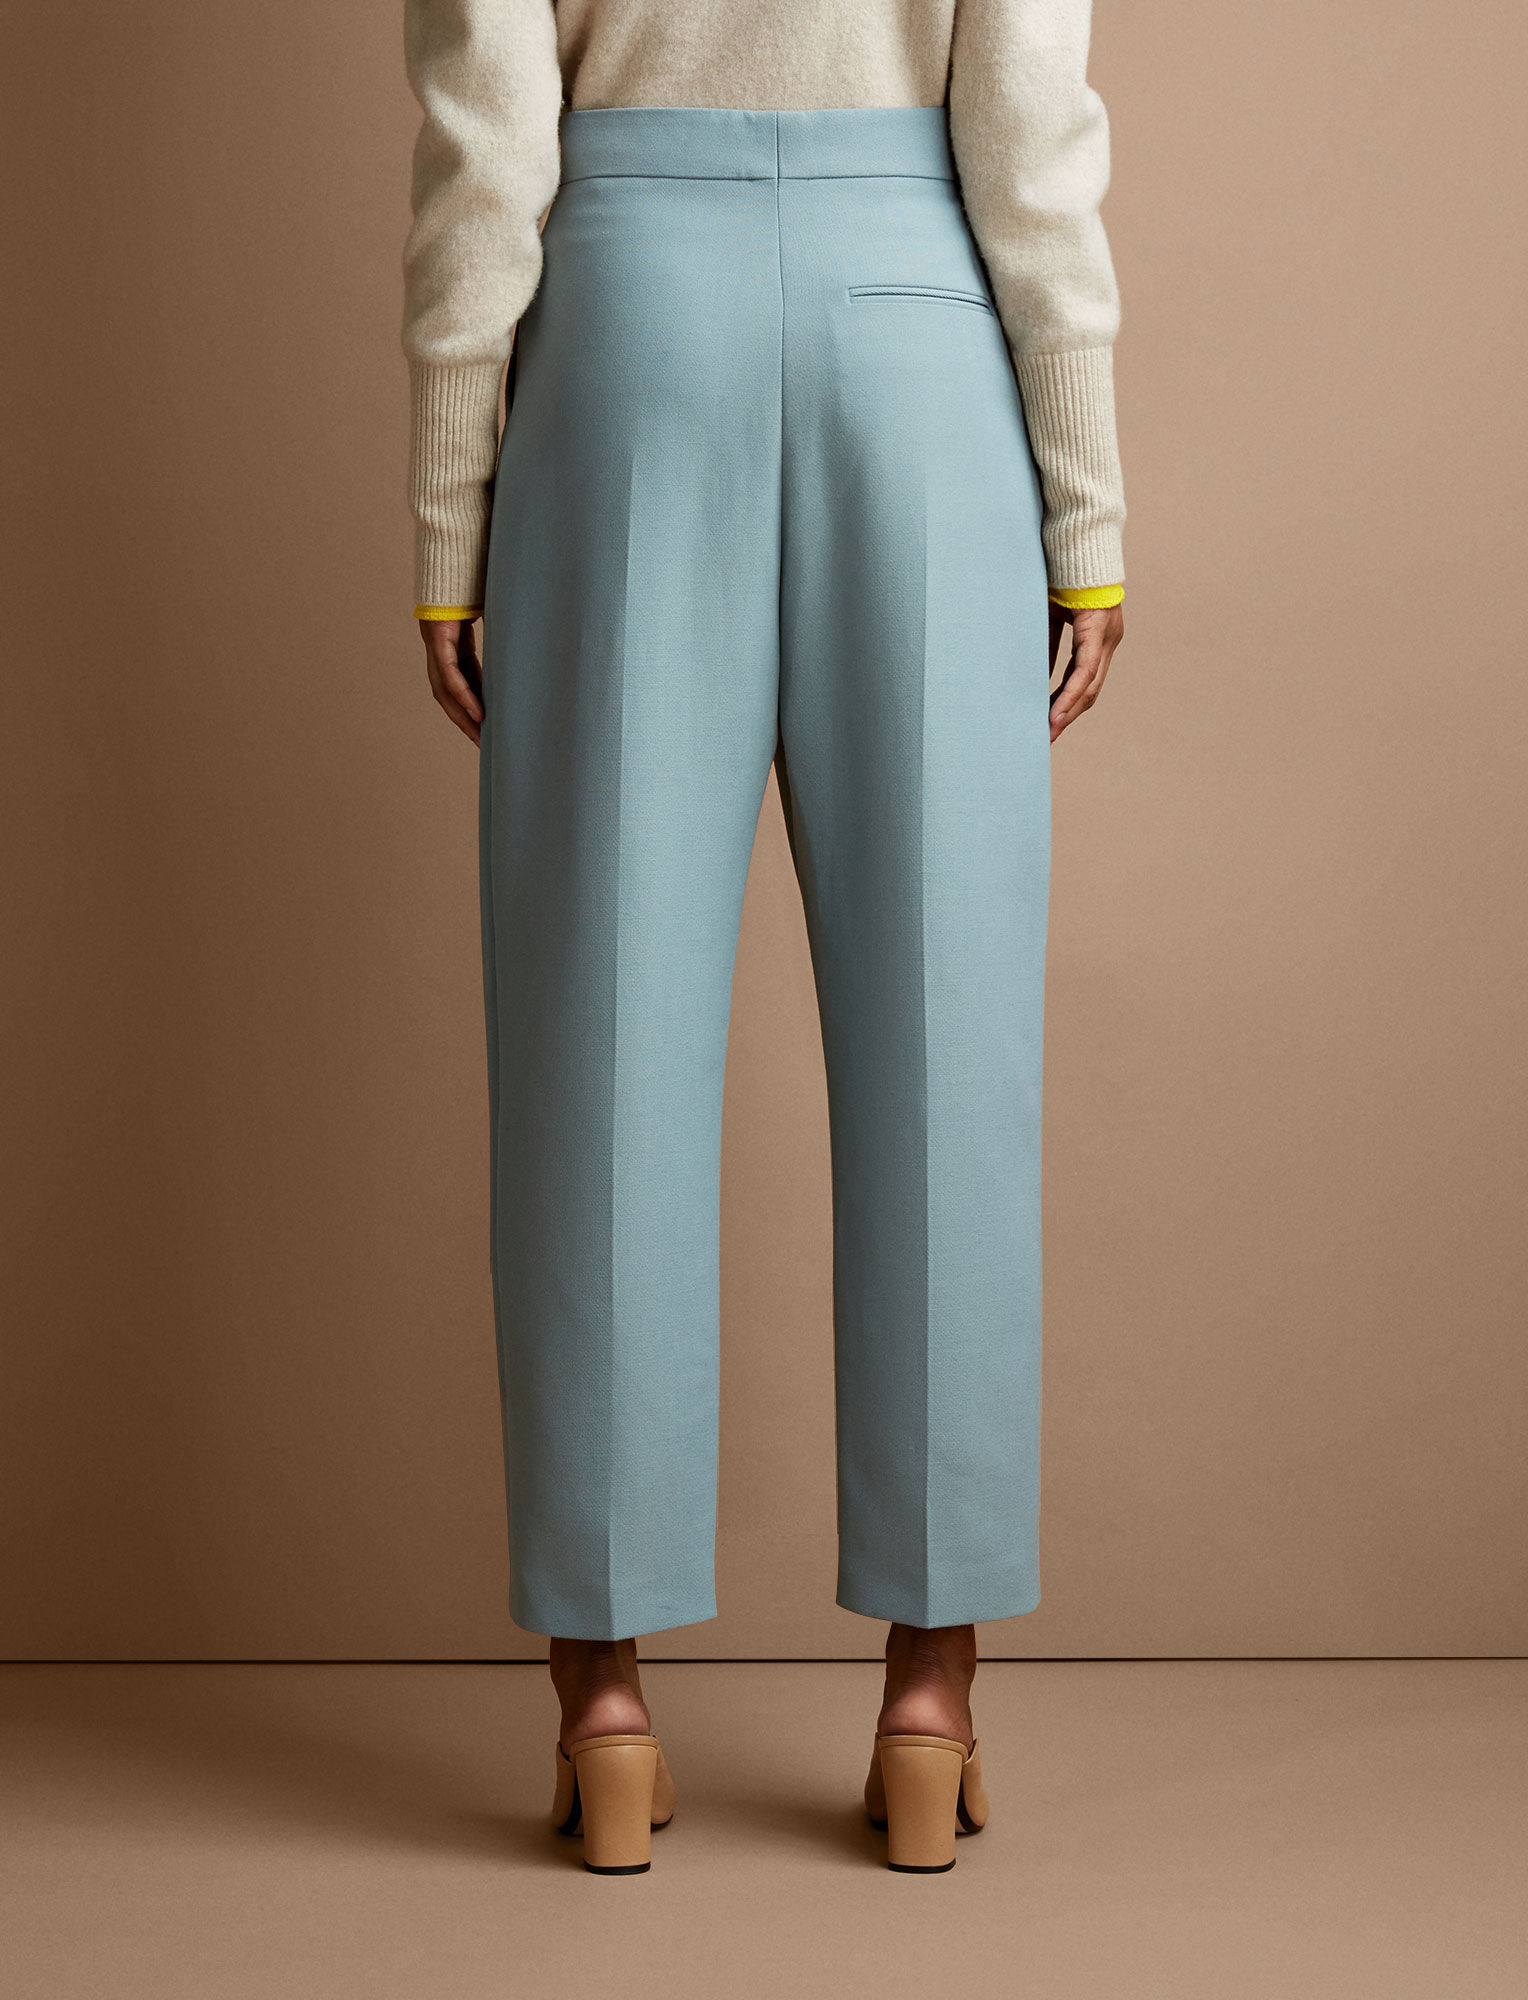 Joseph, Haim Tailoring Canvas Trousers, in MINT